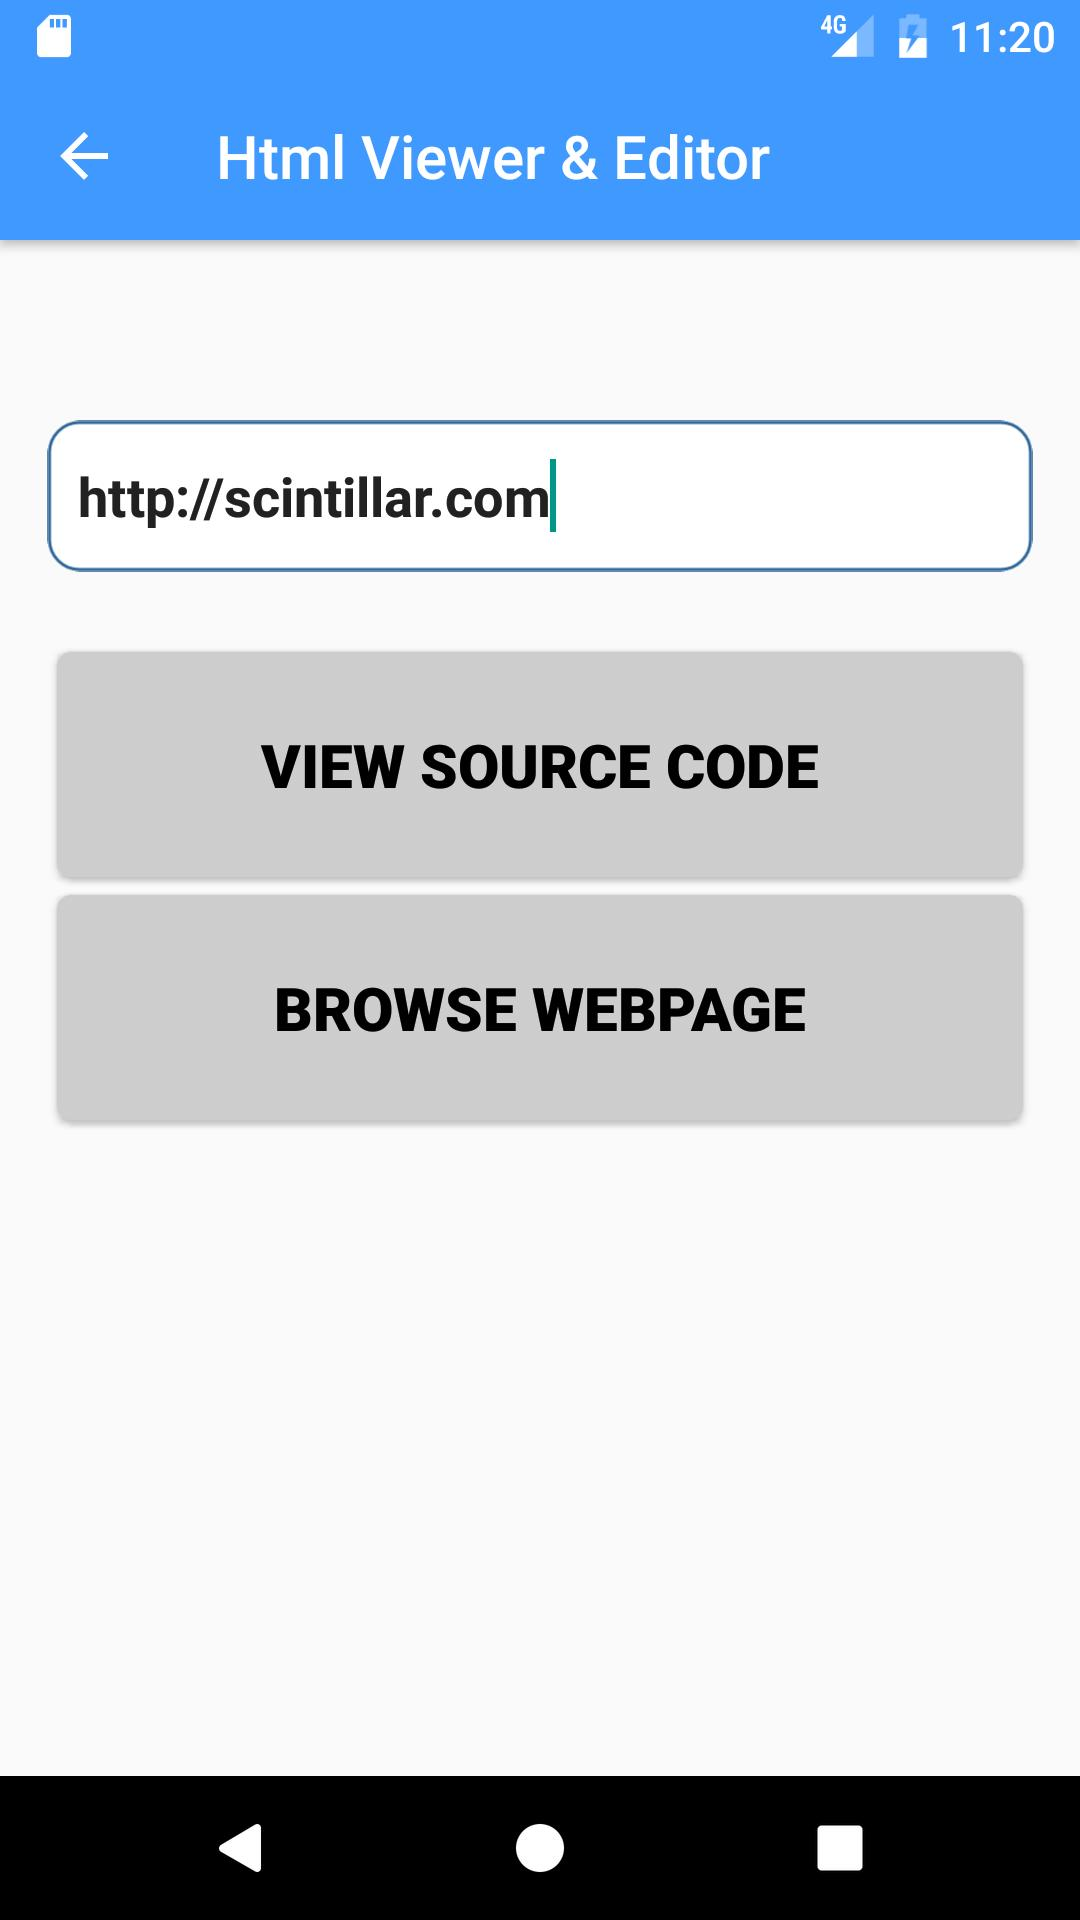 Html Viewer And Editor for Android - APK Download